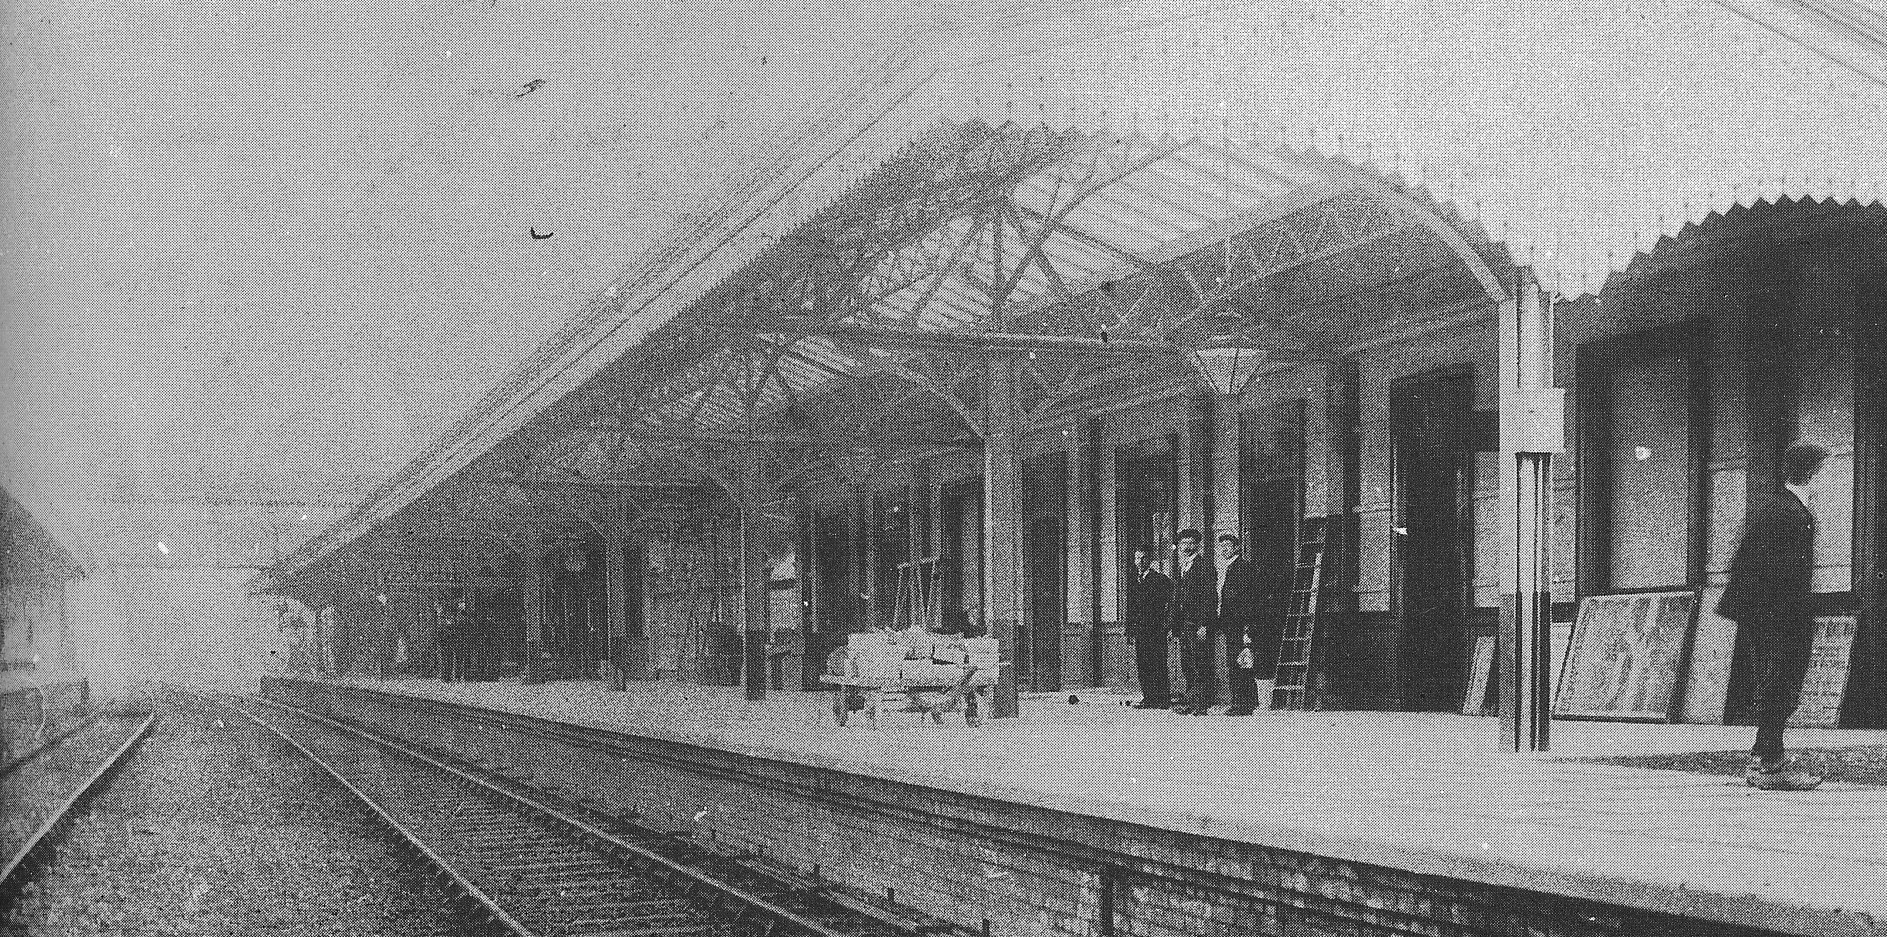 Black and white photograph taken from the tracks with platforms either side. There are four men on the platform looking at the camera. Each platform has an individual canopy